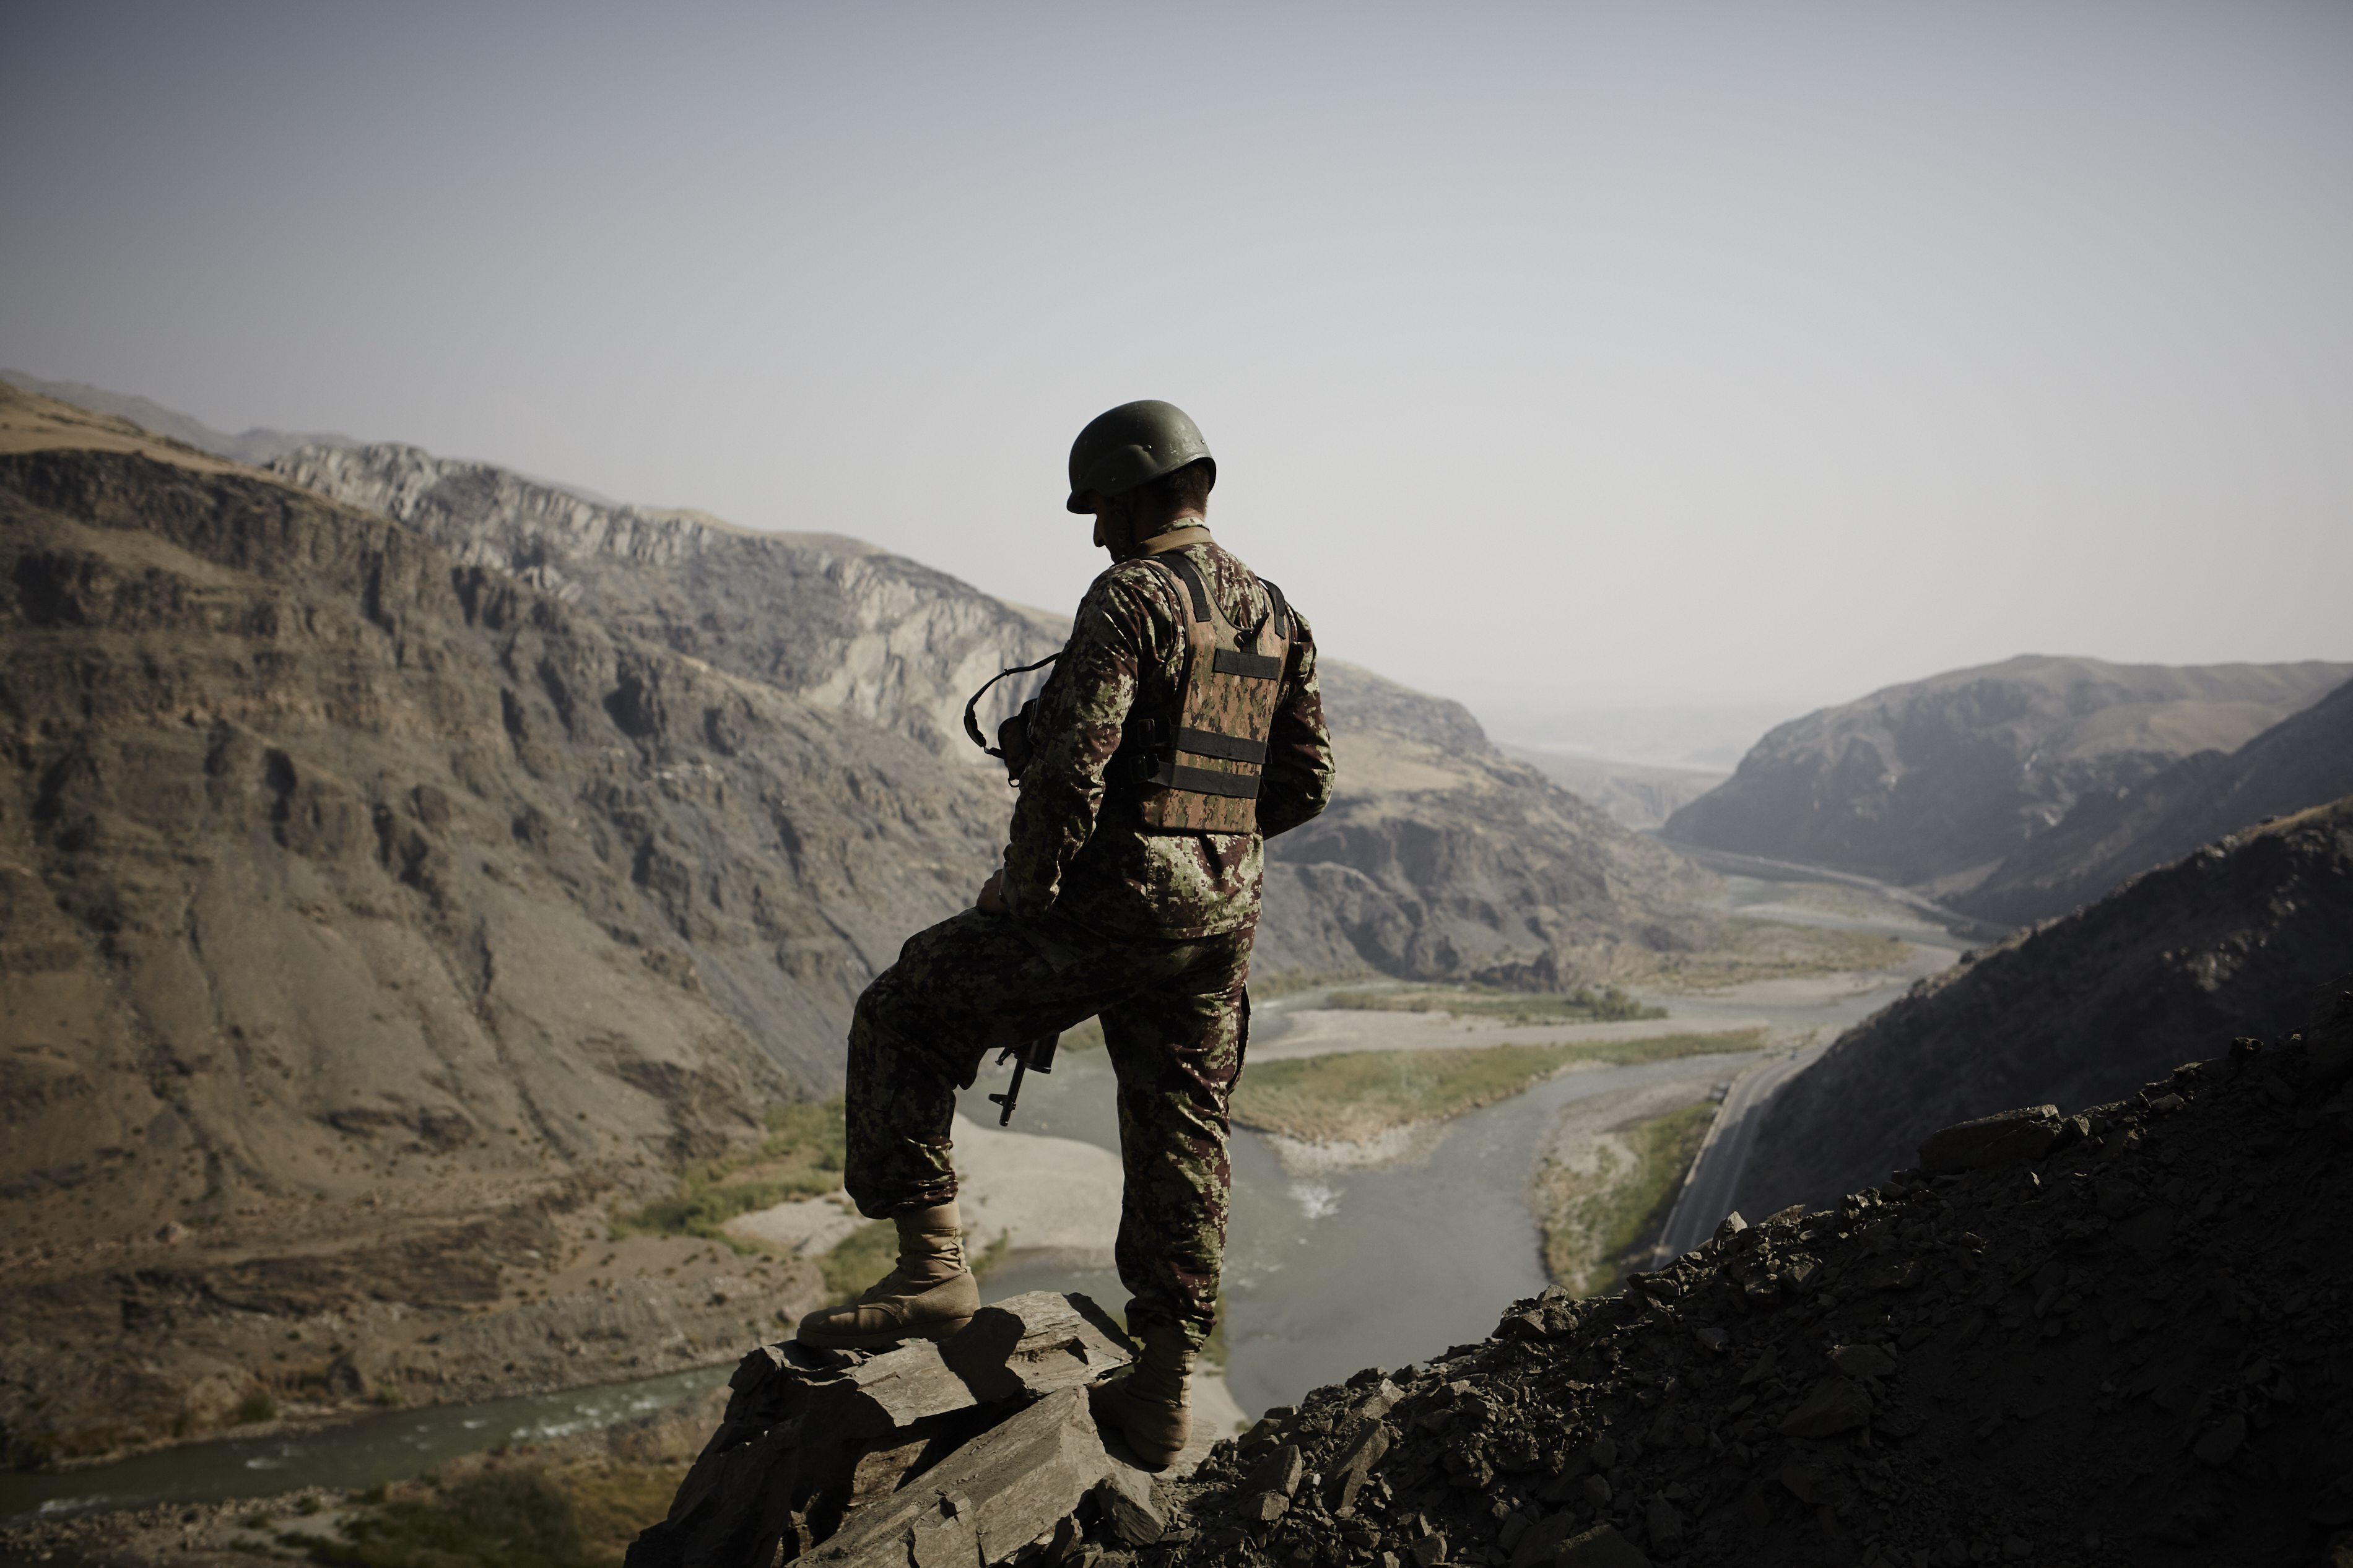 ***Award winning Sipa photographer Sebastiano Tomada spent several weeks inside the Afghan National Army - traveling to the combat outpost in the Laghman Province, living with the troops and witnessing the start of the fighting season 2013***A Afghan National Army soldier overlooks a valley in eastern Afghanistan.Afghanistan has seen a very active start to its fighting season in 2013.The Afghan National Security Forces in particular the ANA(AfghanNationalArmy) has been at the fore front of the fight, while the NATO led International Security Assistance Force has largely disengaged and transitioned into a supporting,advising and training role while preparing for its exit from the country. (Photo by Sebastiano Tomada/Sipa USA)